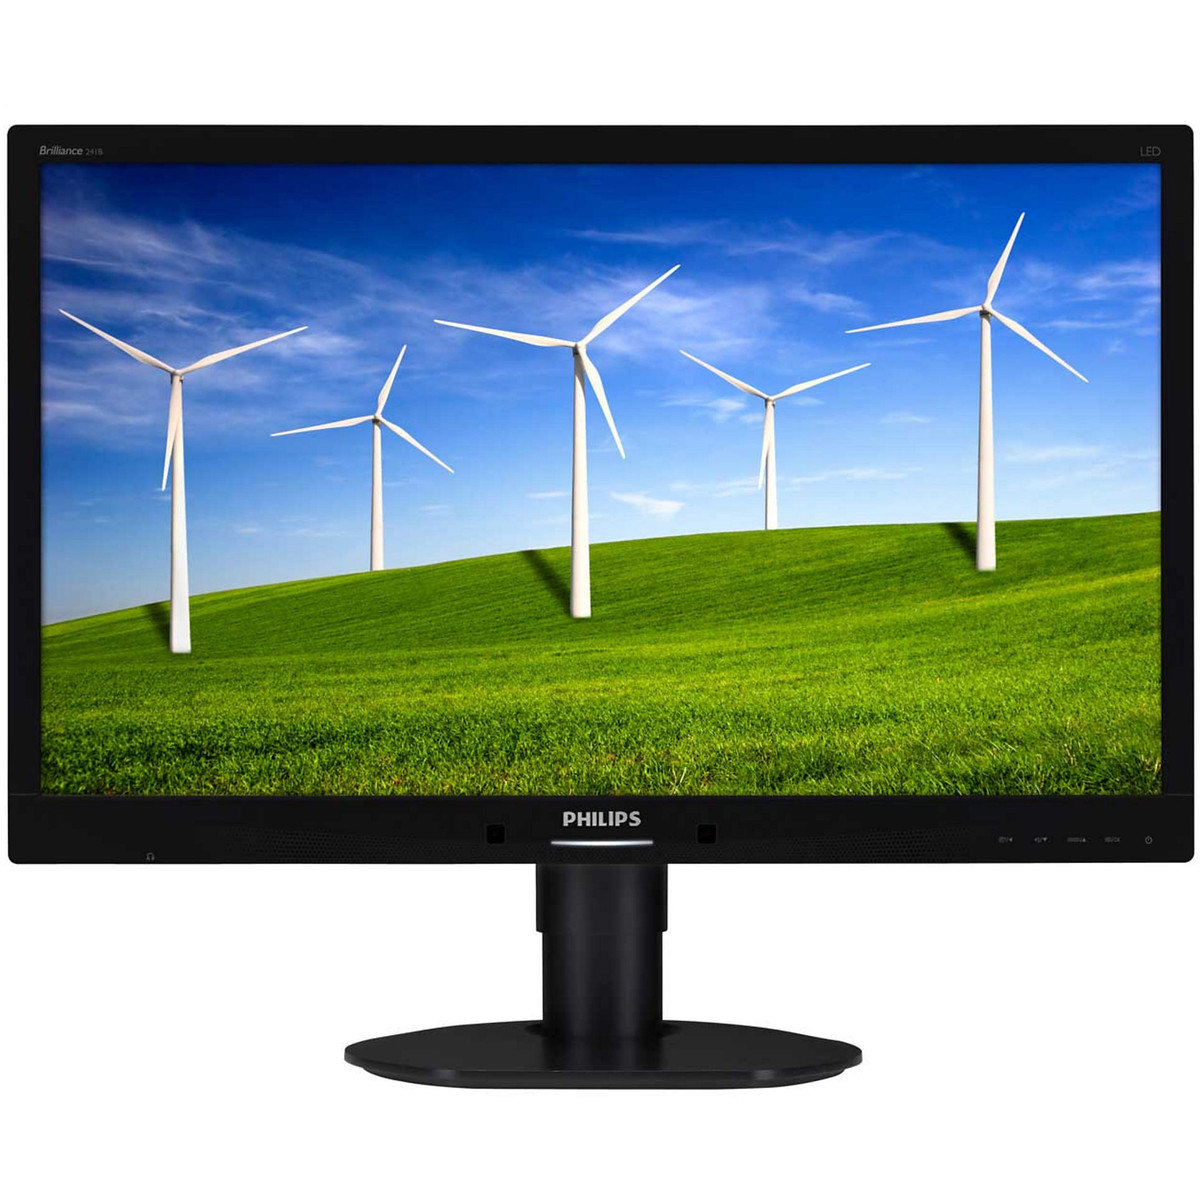 Monitor LED 241B4LPYCB/00, 24 inch, 1920 x 1080 Full HD, boxe